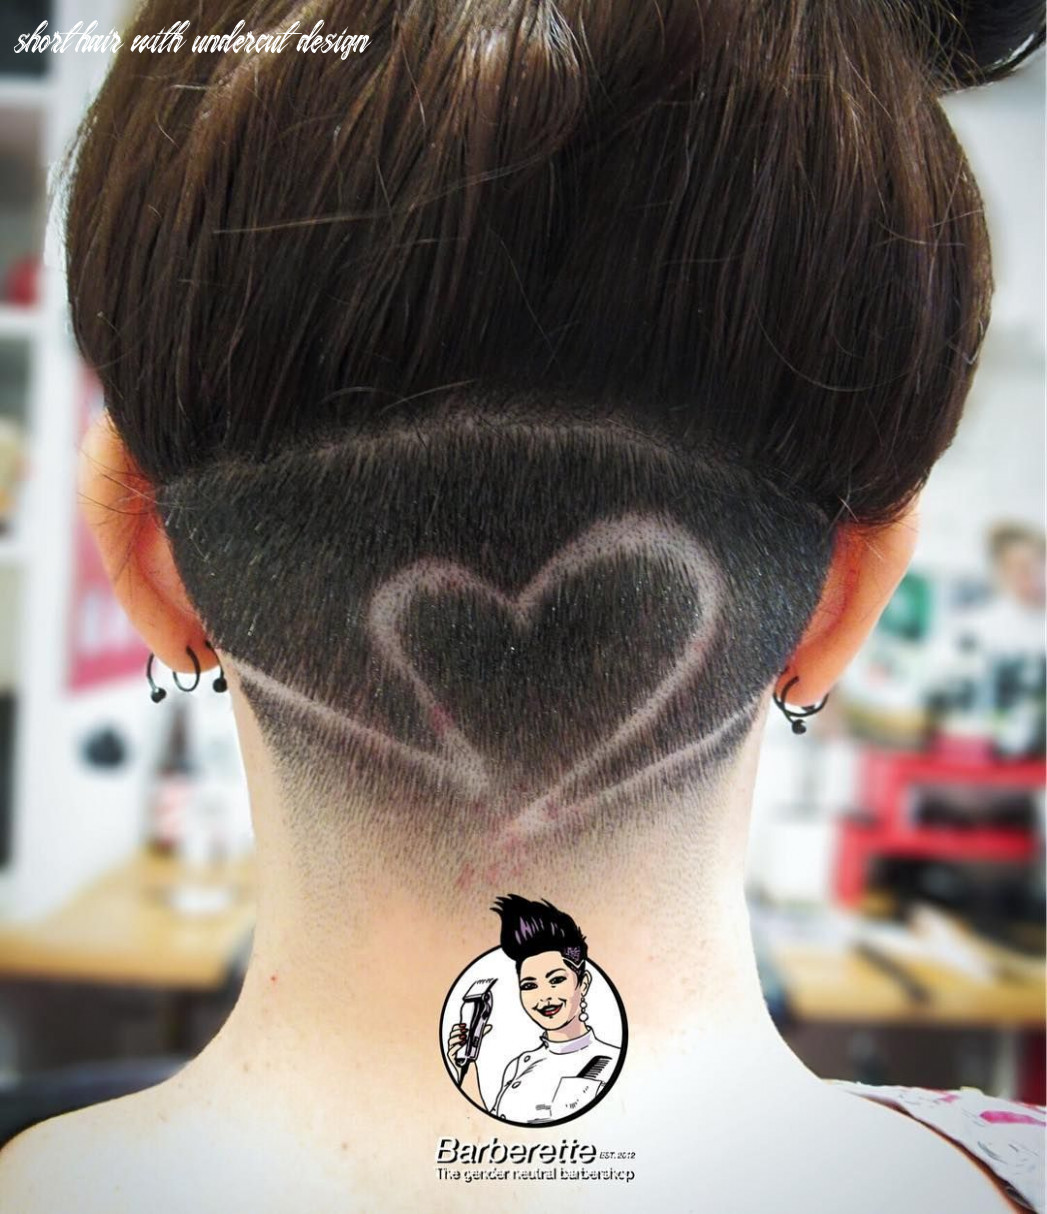 Undercut design with fade by Rose ❤️ #dontpayextraforyourgender ...